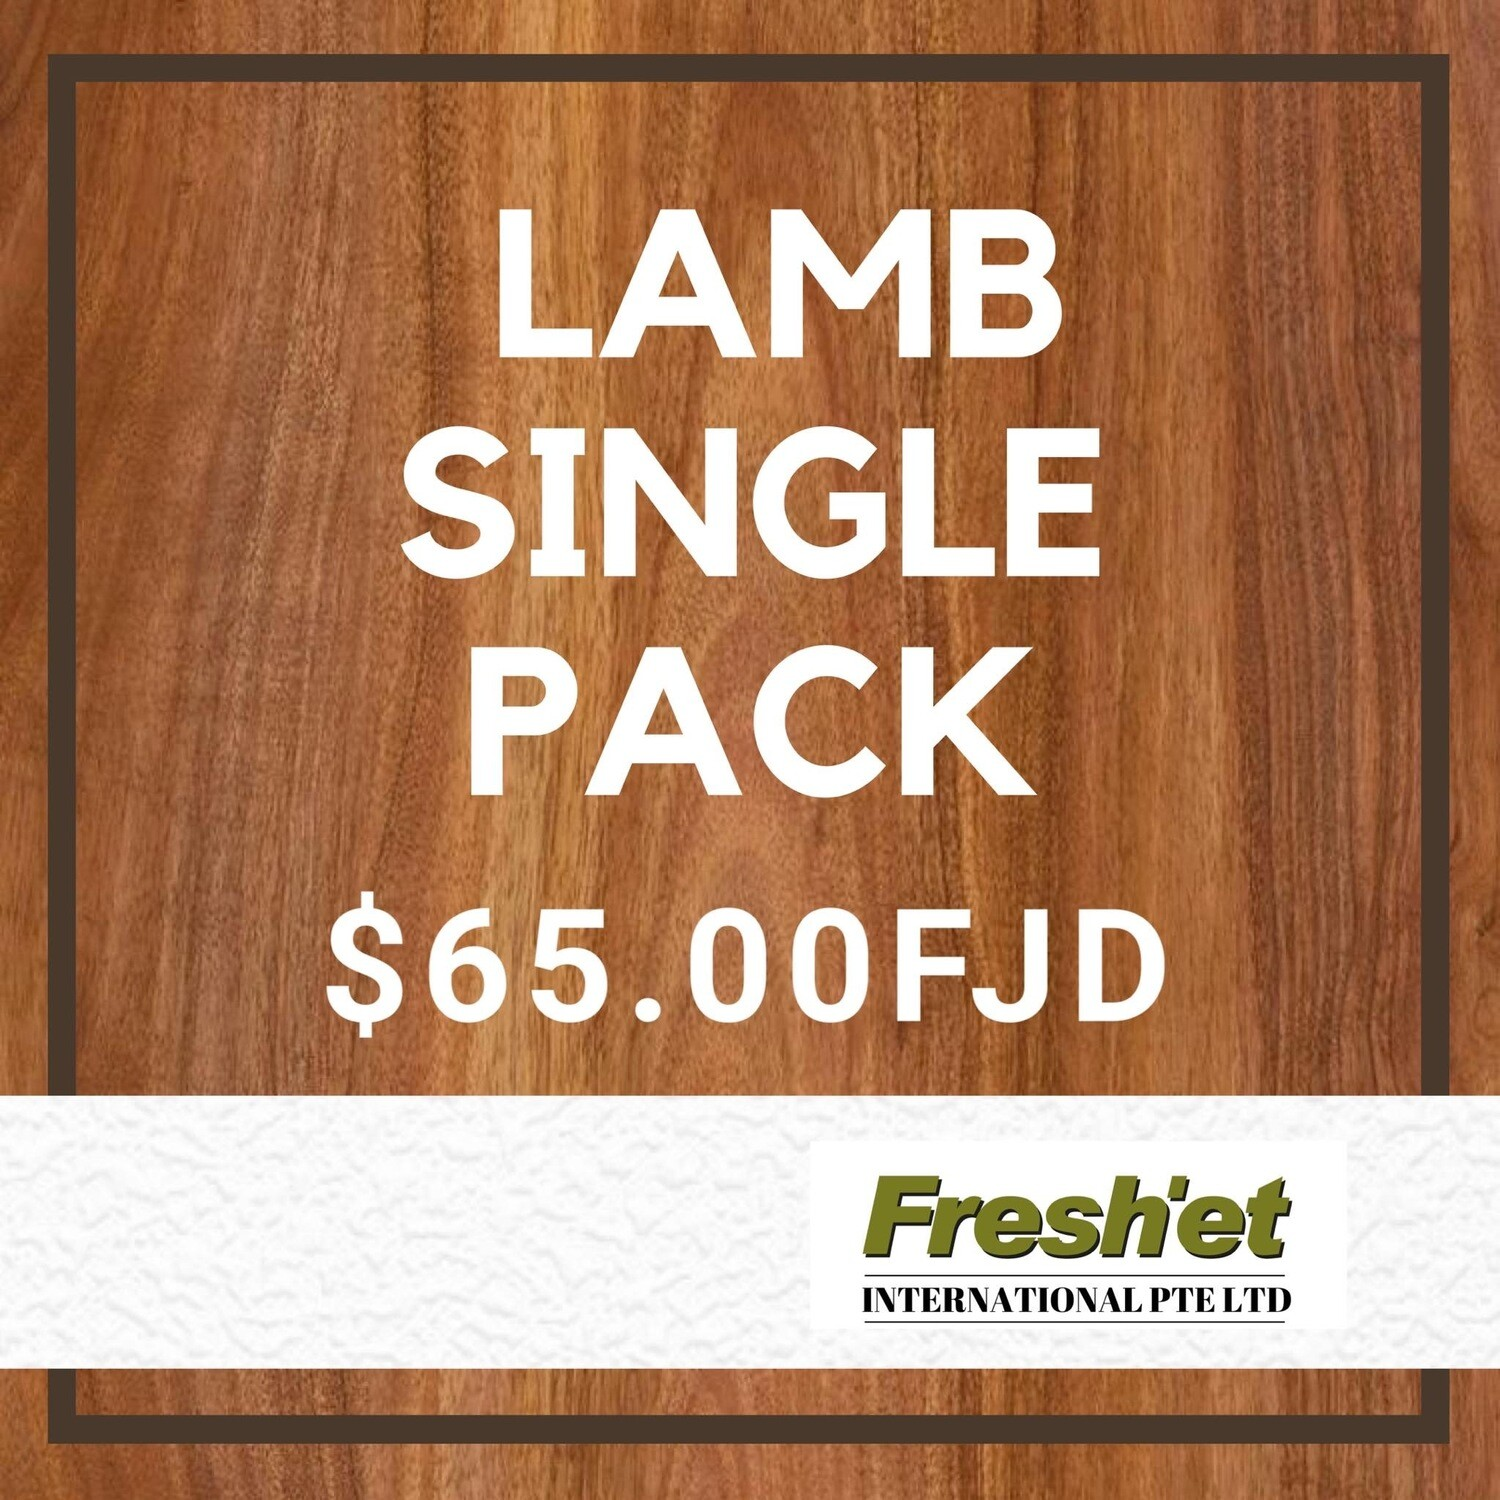 LAMB PACKS